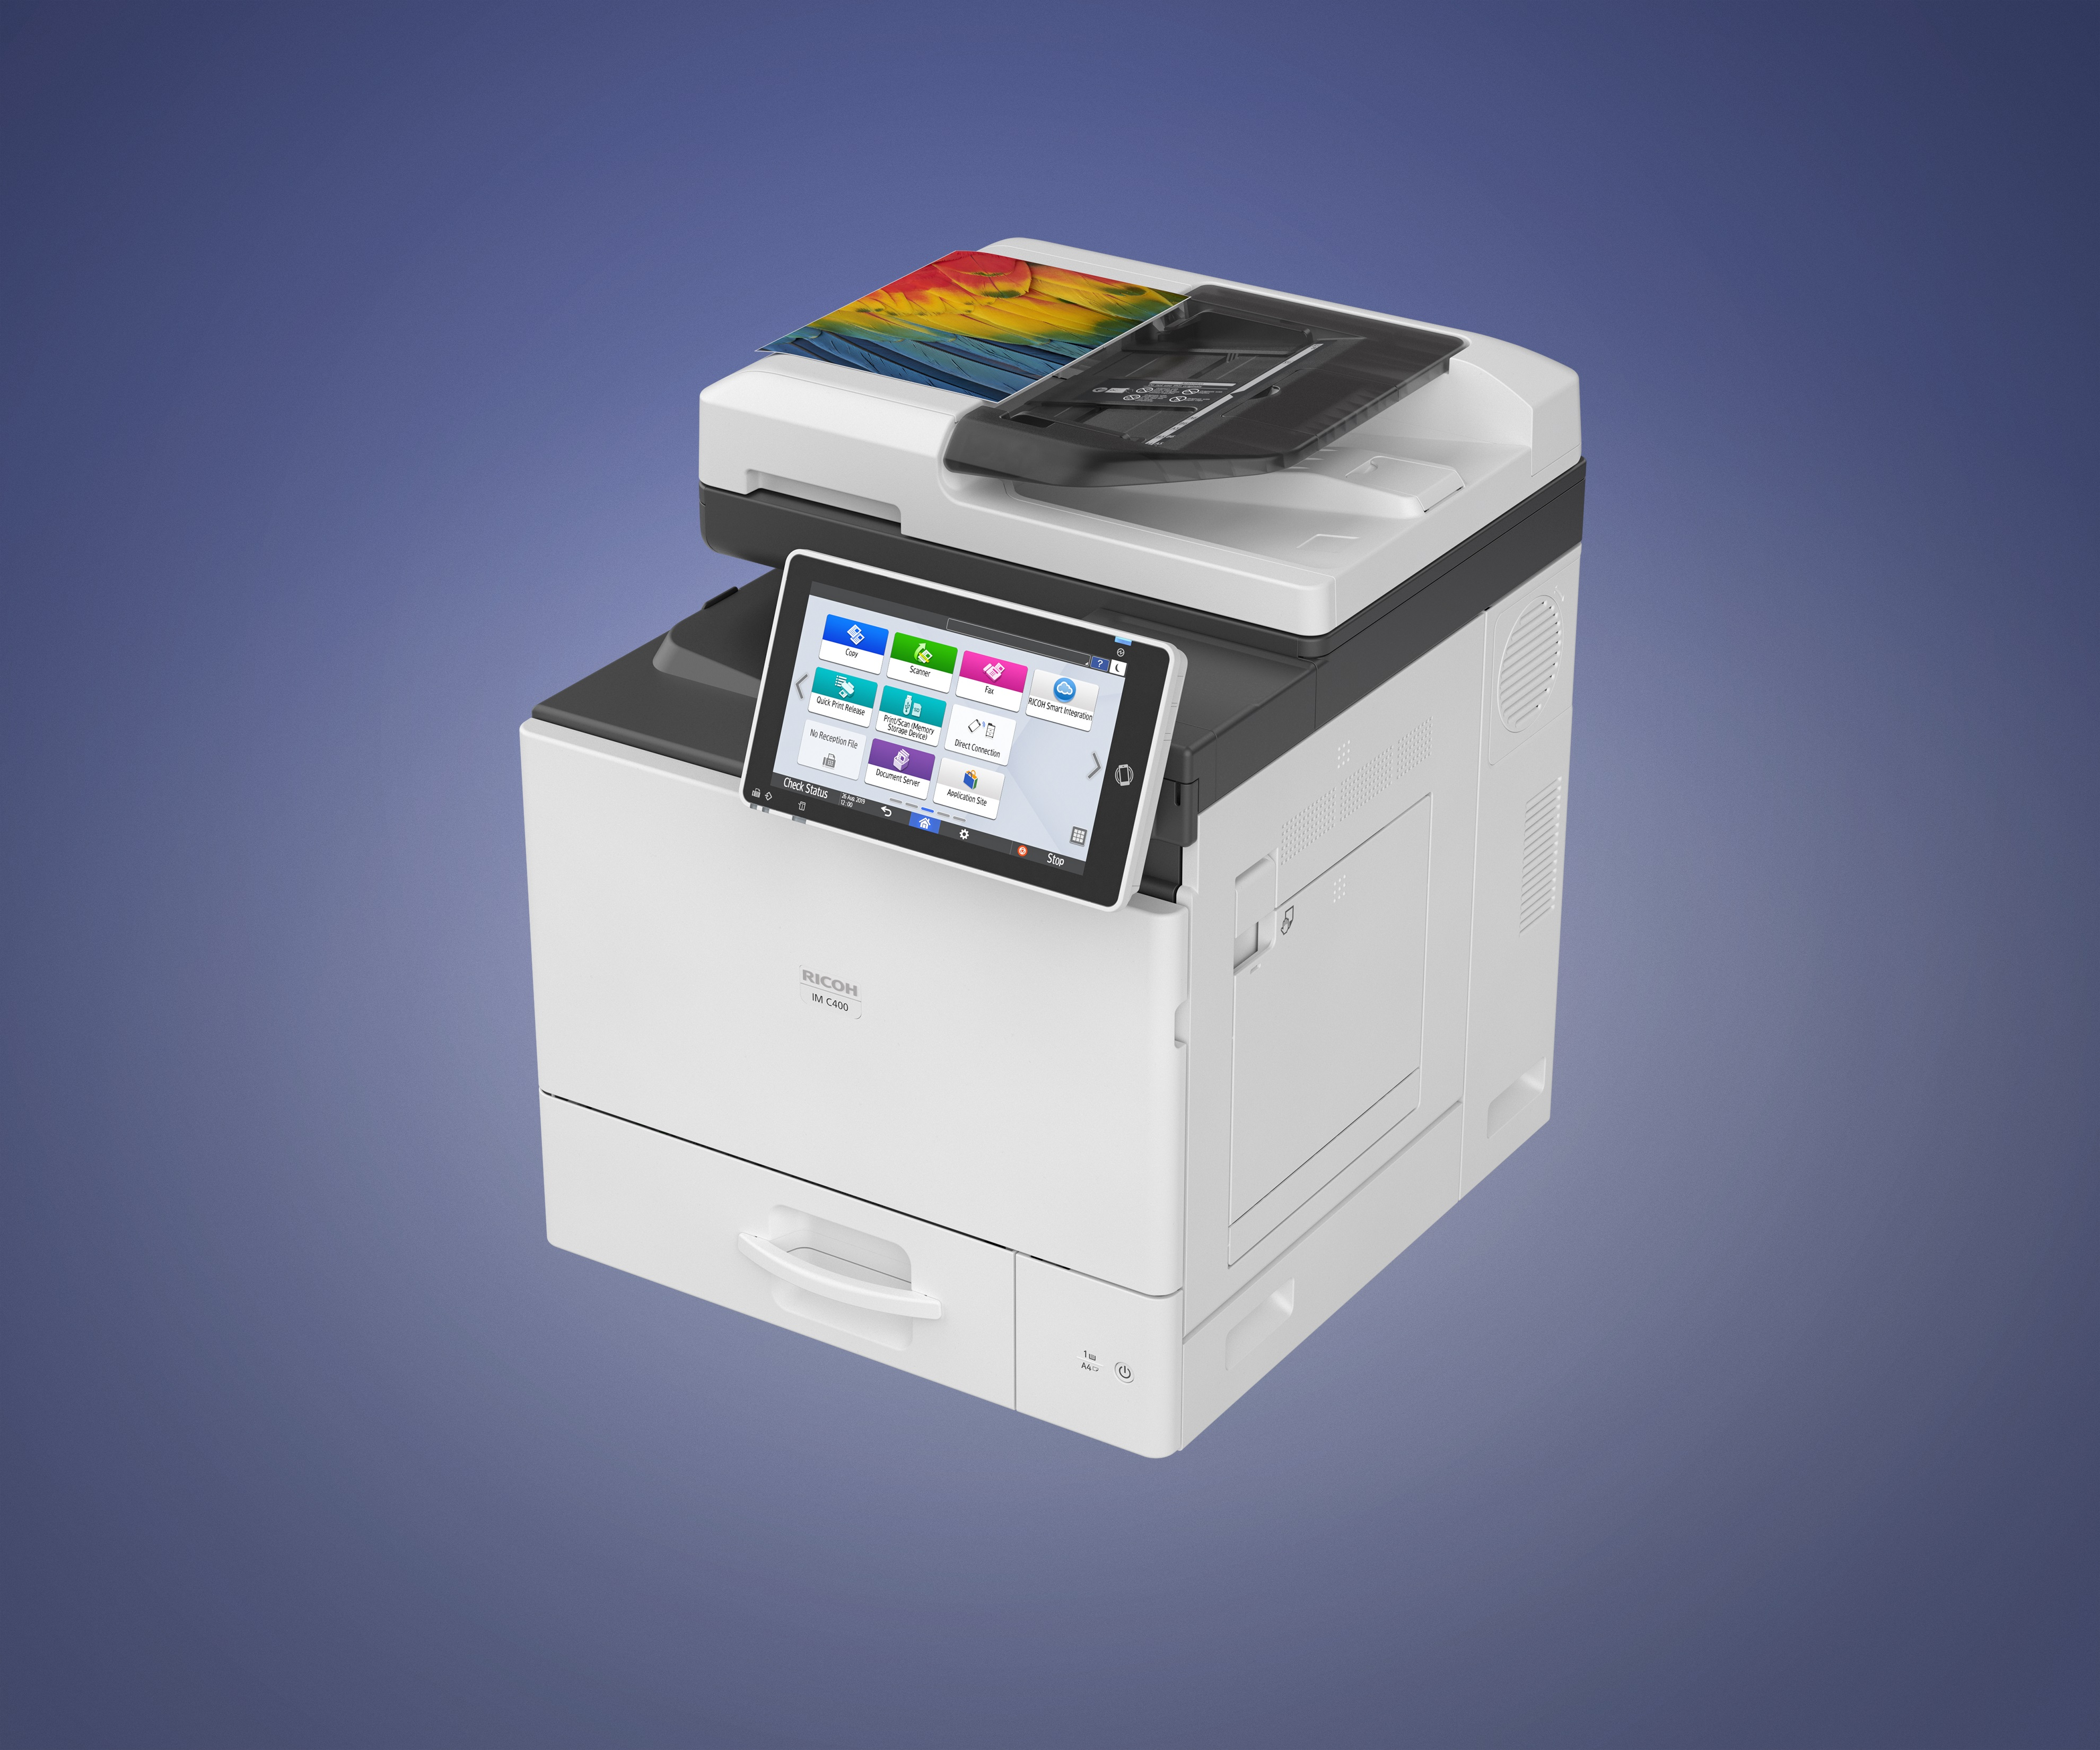 Ricoh launches A4 colour Intelligent Devices to support changing needs of the digital workplace